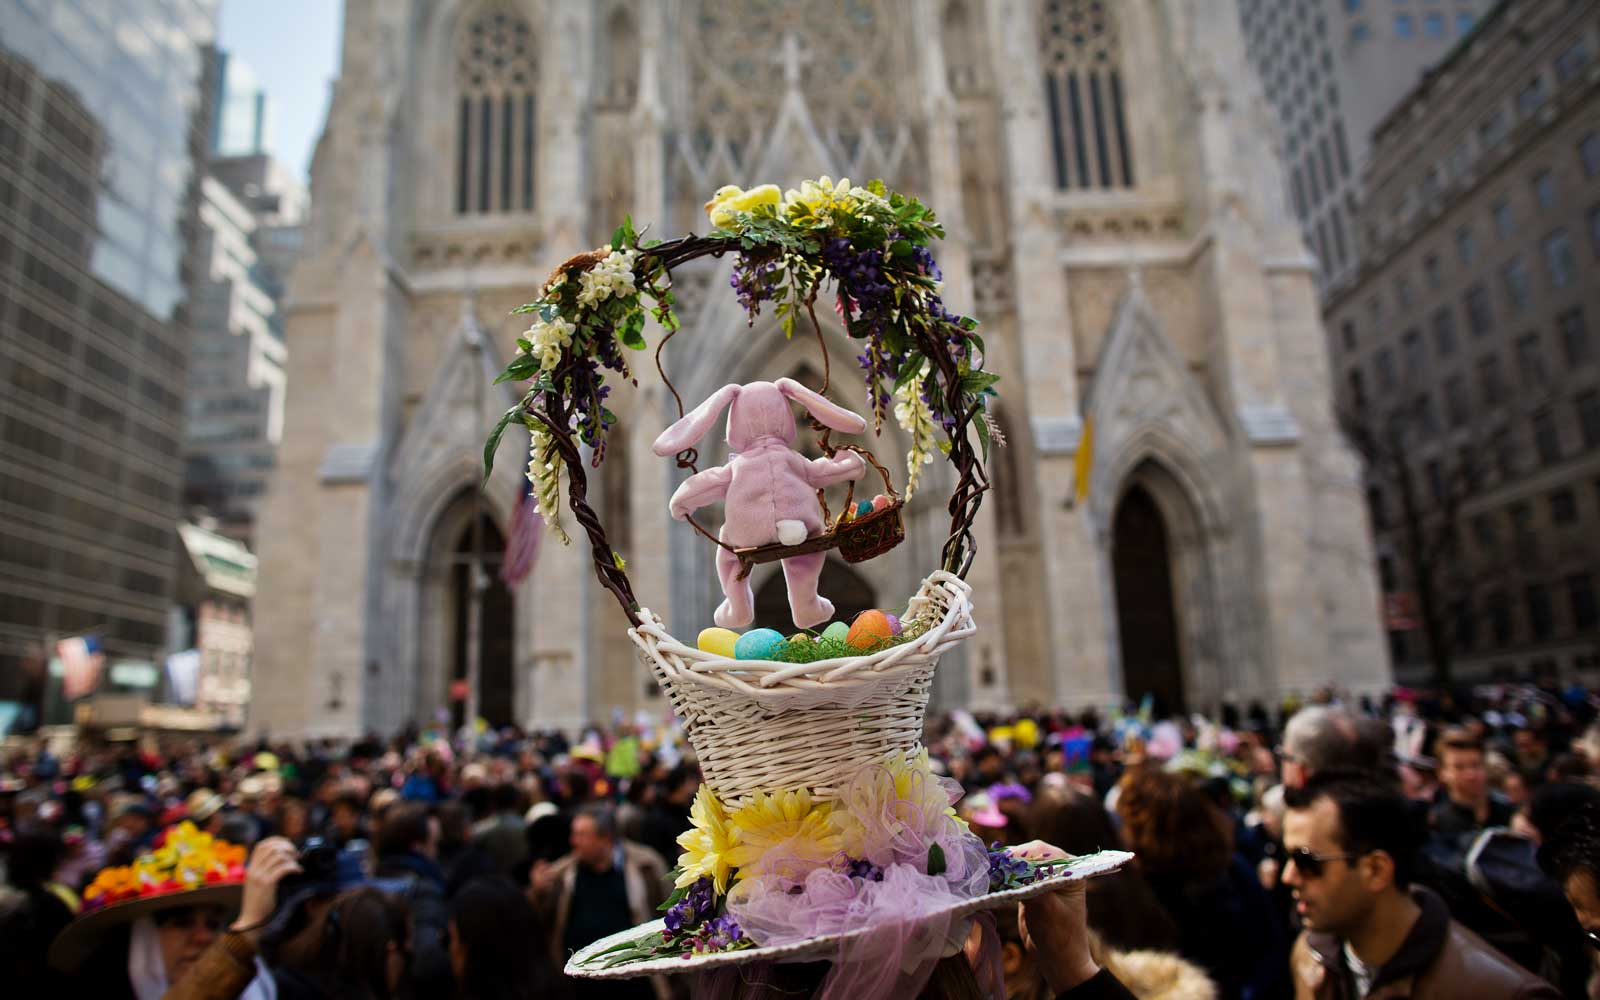 New York City Easter Bonnet Parade